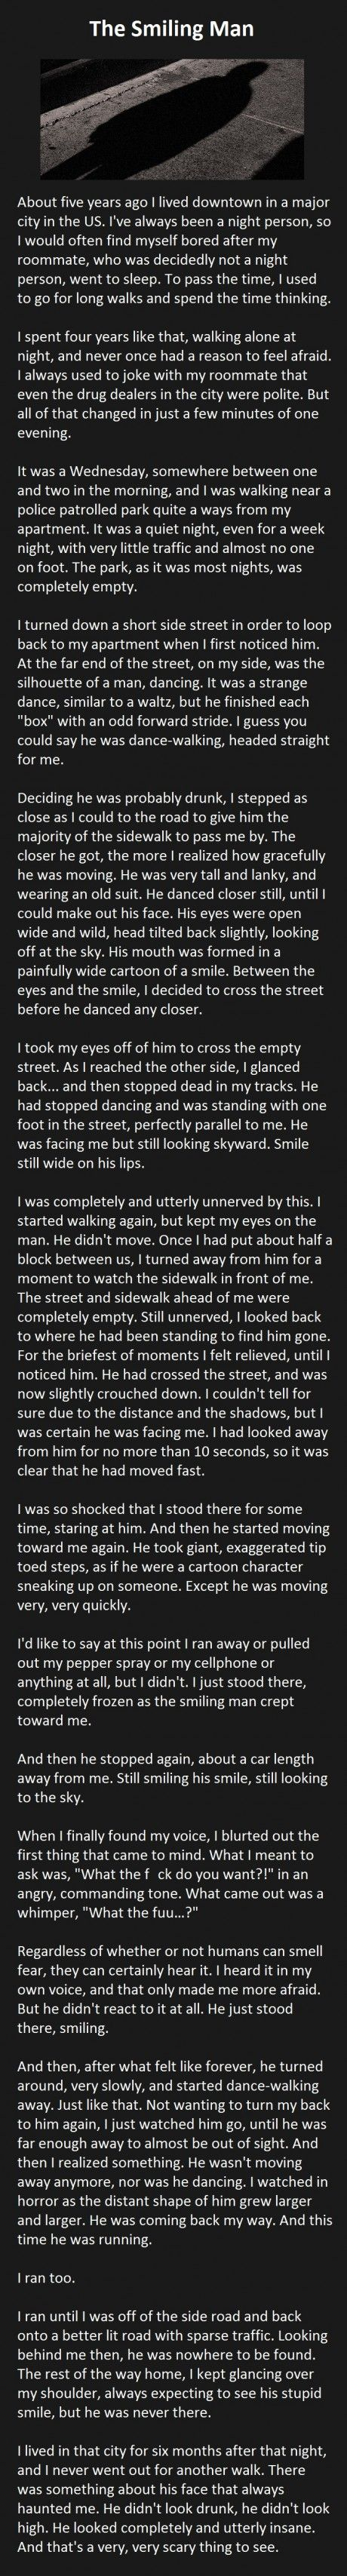 The Smiling Man, read this many times & it still creeps me out (shudder)